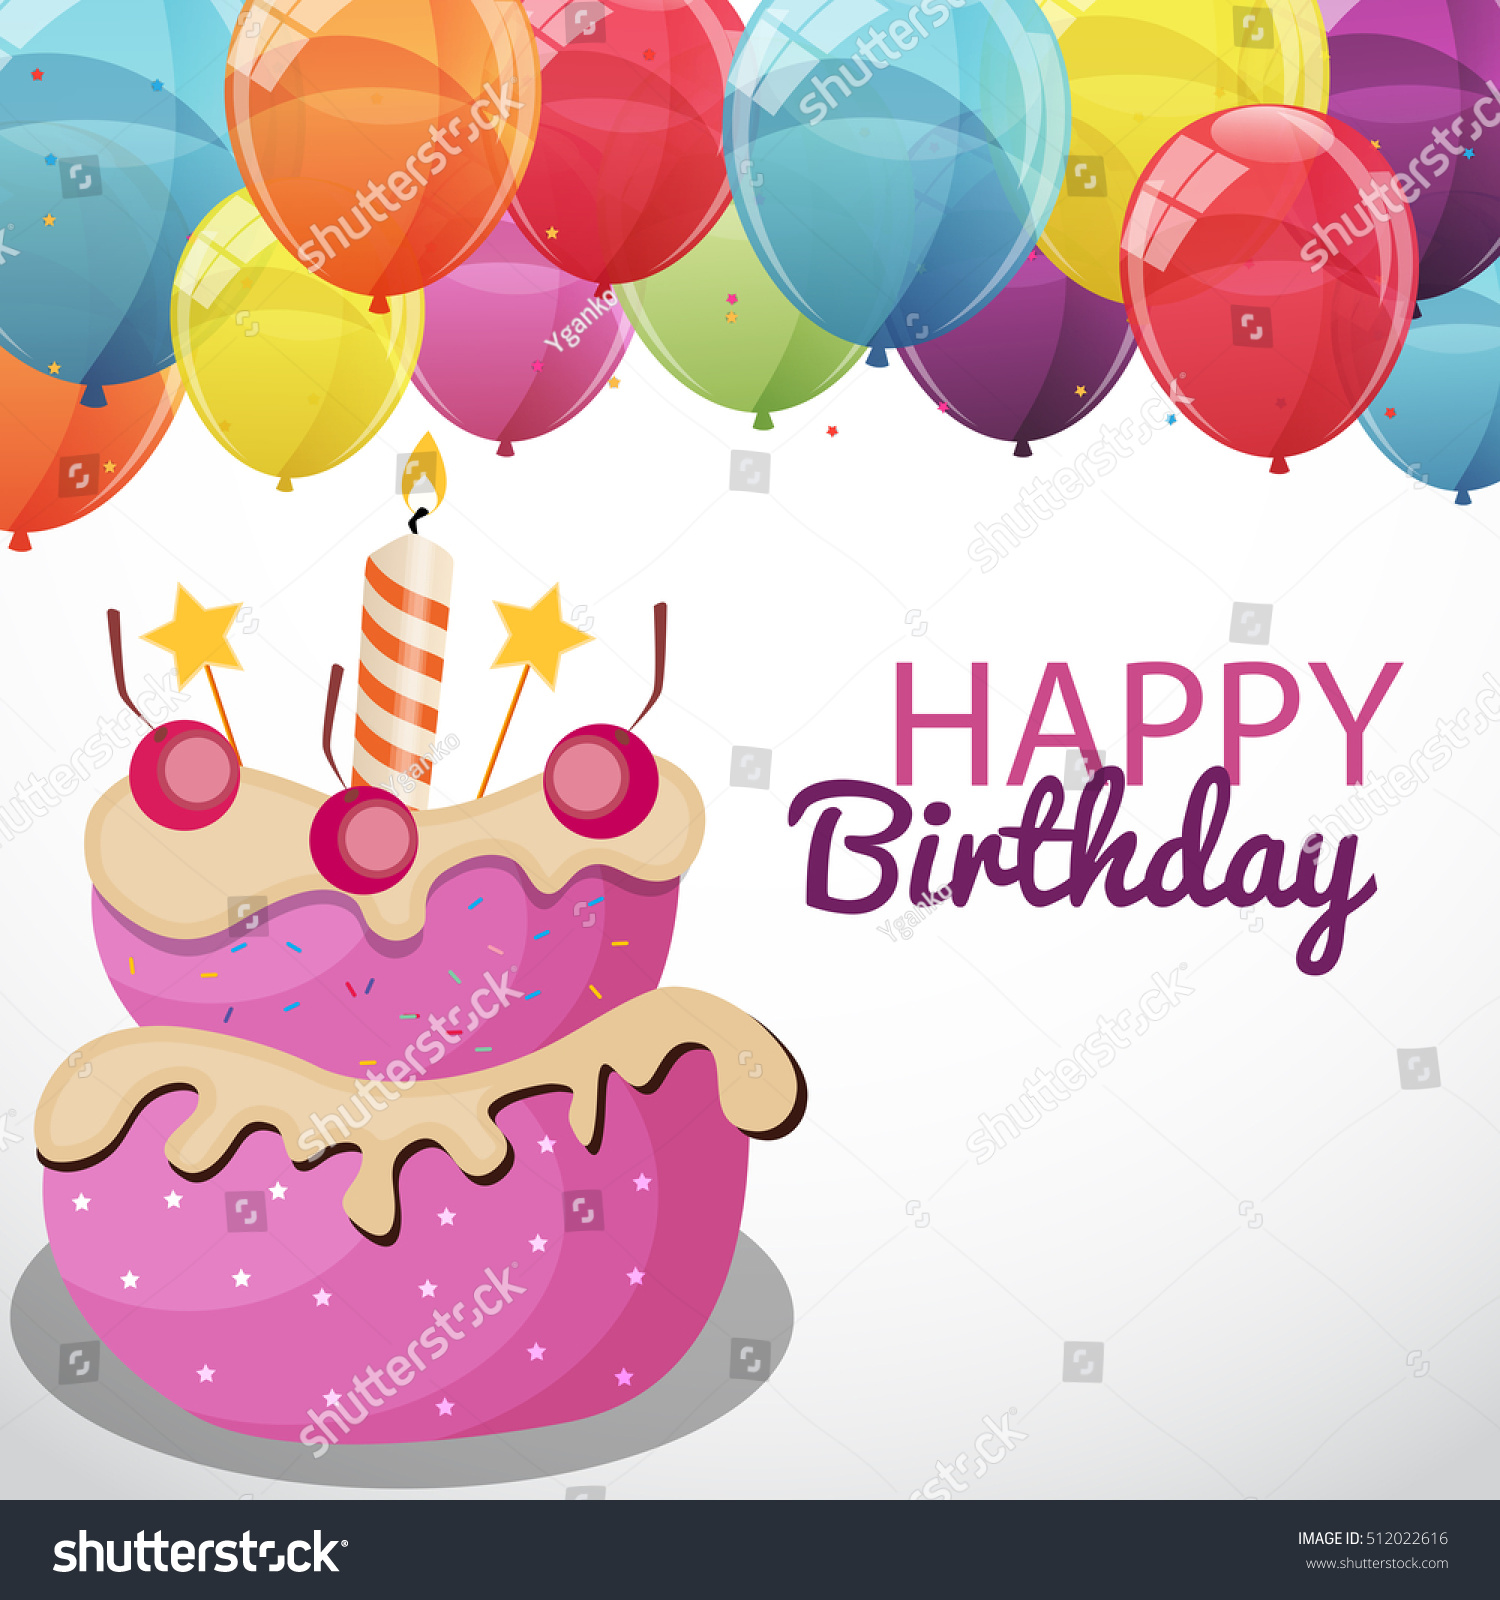 Happy Birthday Card Template Balloons Flags Illustration – Happy Birthday Cards Templates